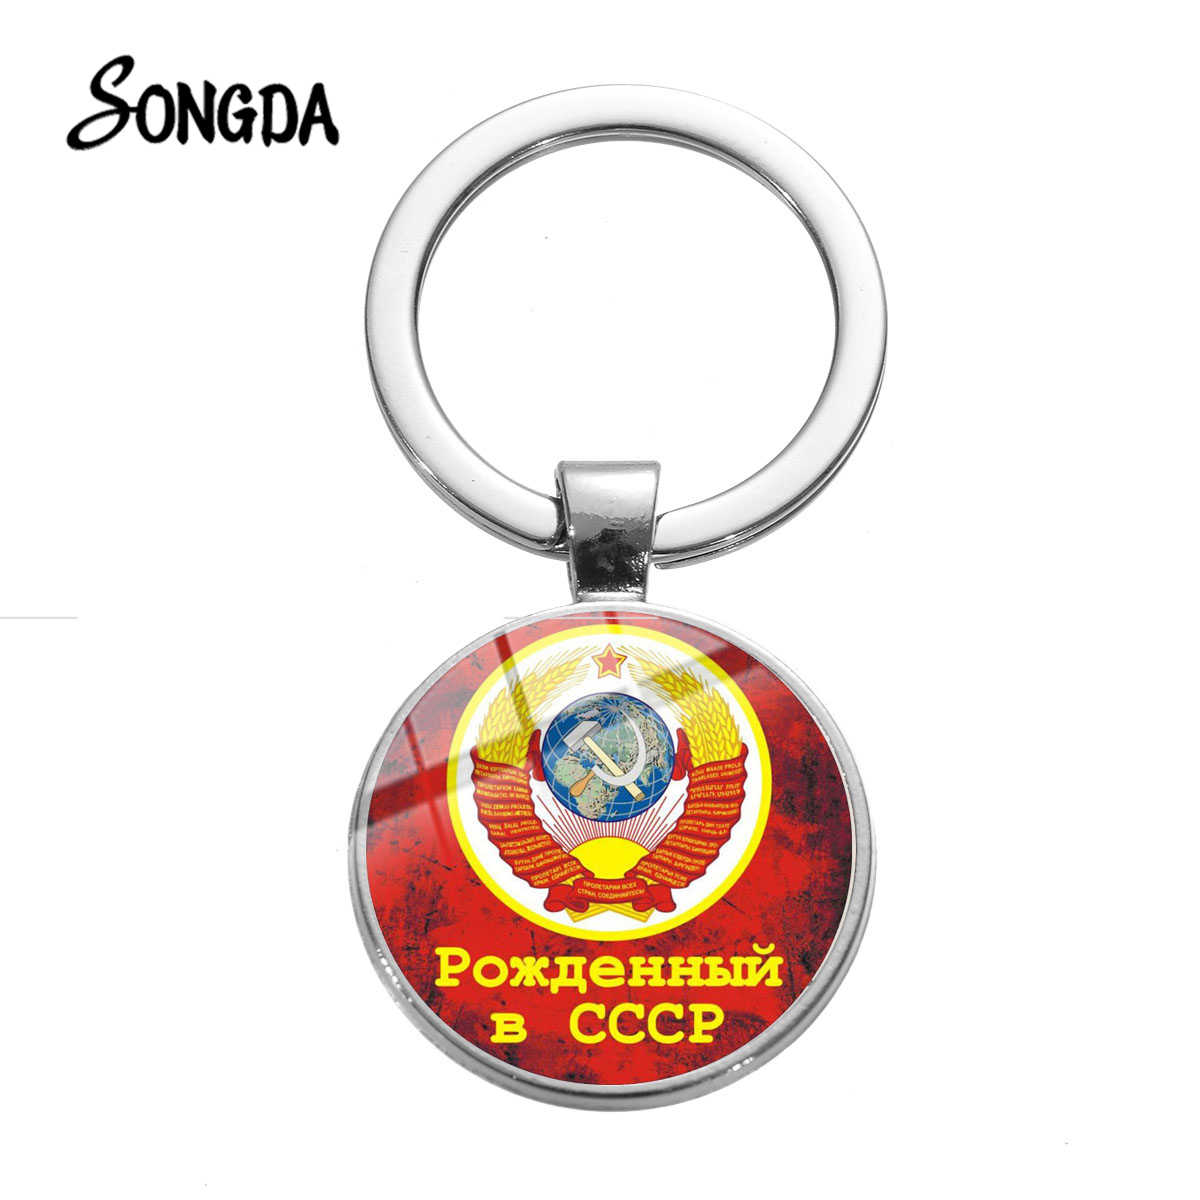 SONGDA USSR Soviet Badges Keychain Sickle Hammer CCCP Russia Emblem Communism Symbol High Quality Silver Plated Glass Key Chain